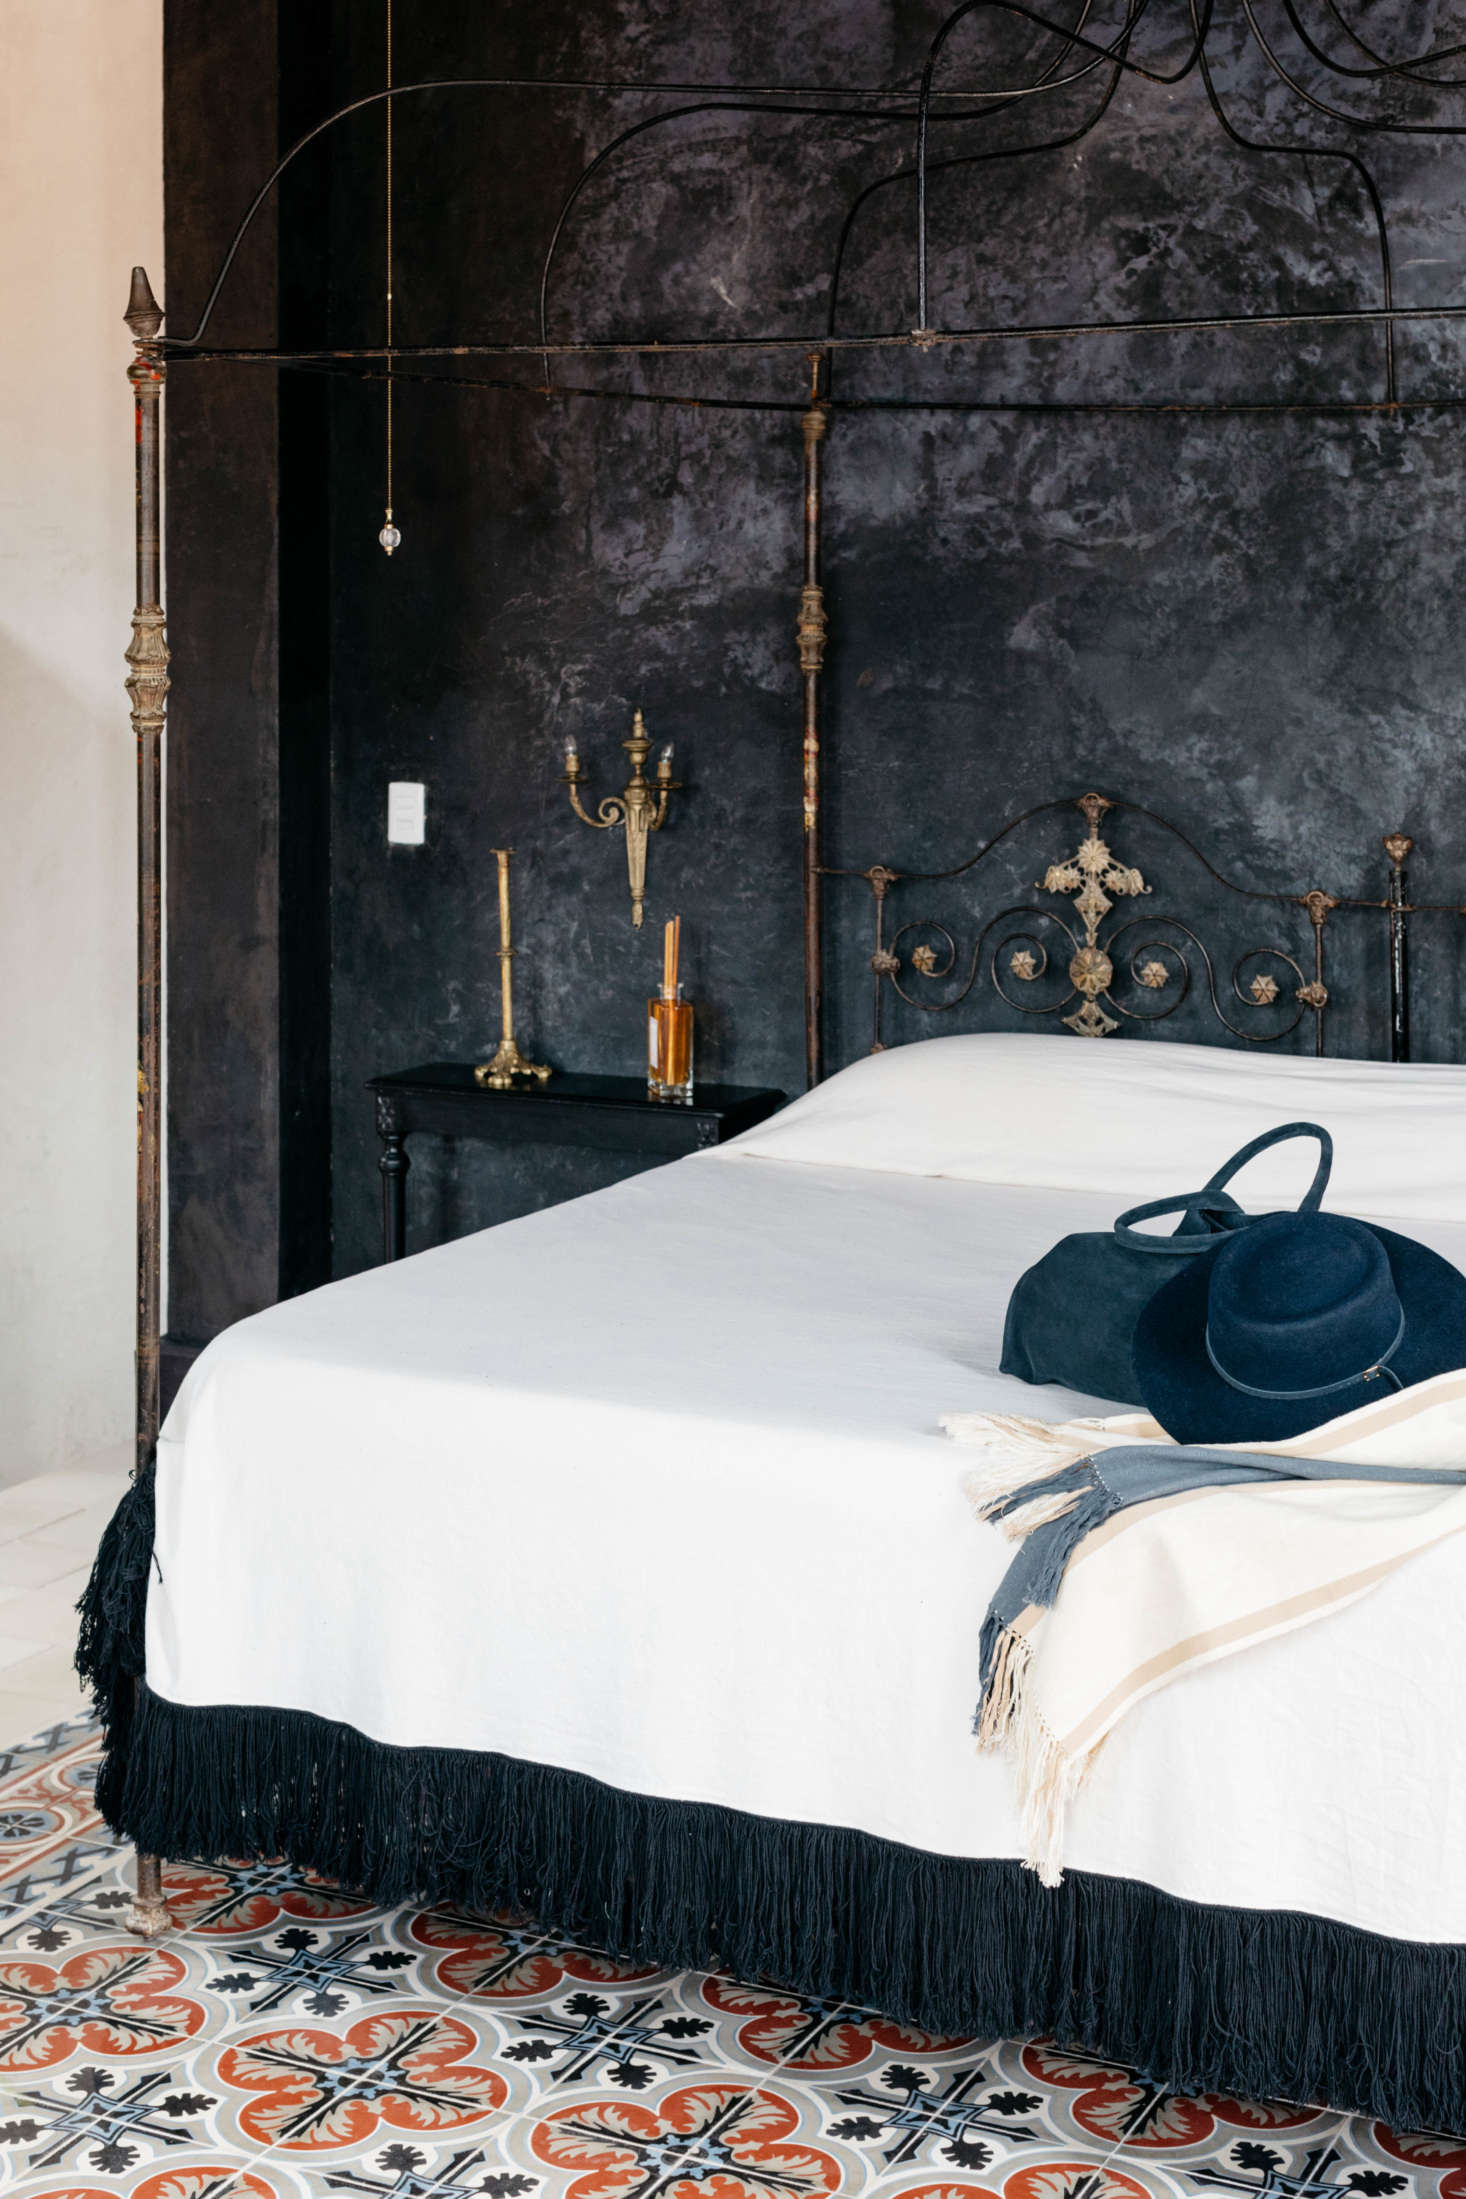 Guest rooms are fitted with vintage pieces, iron bed frames, and plenty of candles.